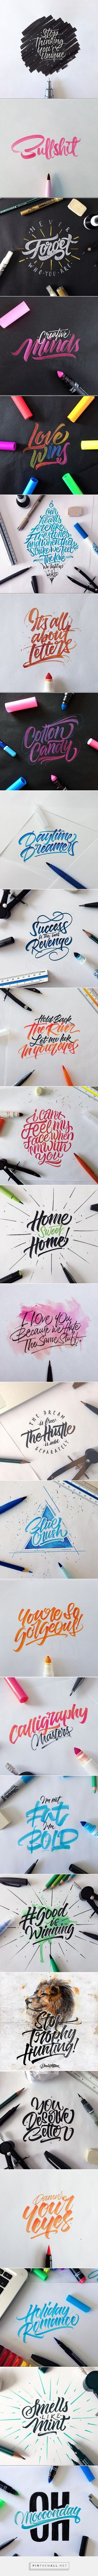 Crayola & Brushpen Lettering Set 3 by David Milan [Typography - Art] Typography Love, Typography Quotes, Typography Inspiration, Typography Letters, Graphic Design Typography, Lettering Design, Graphic Design Inspiration, Design Graphique, Art Graphique